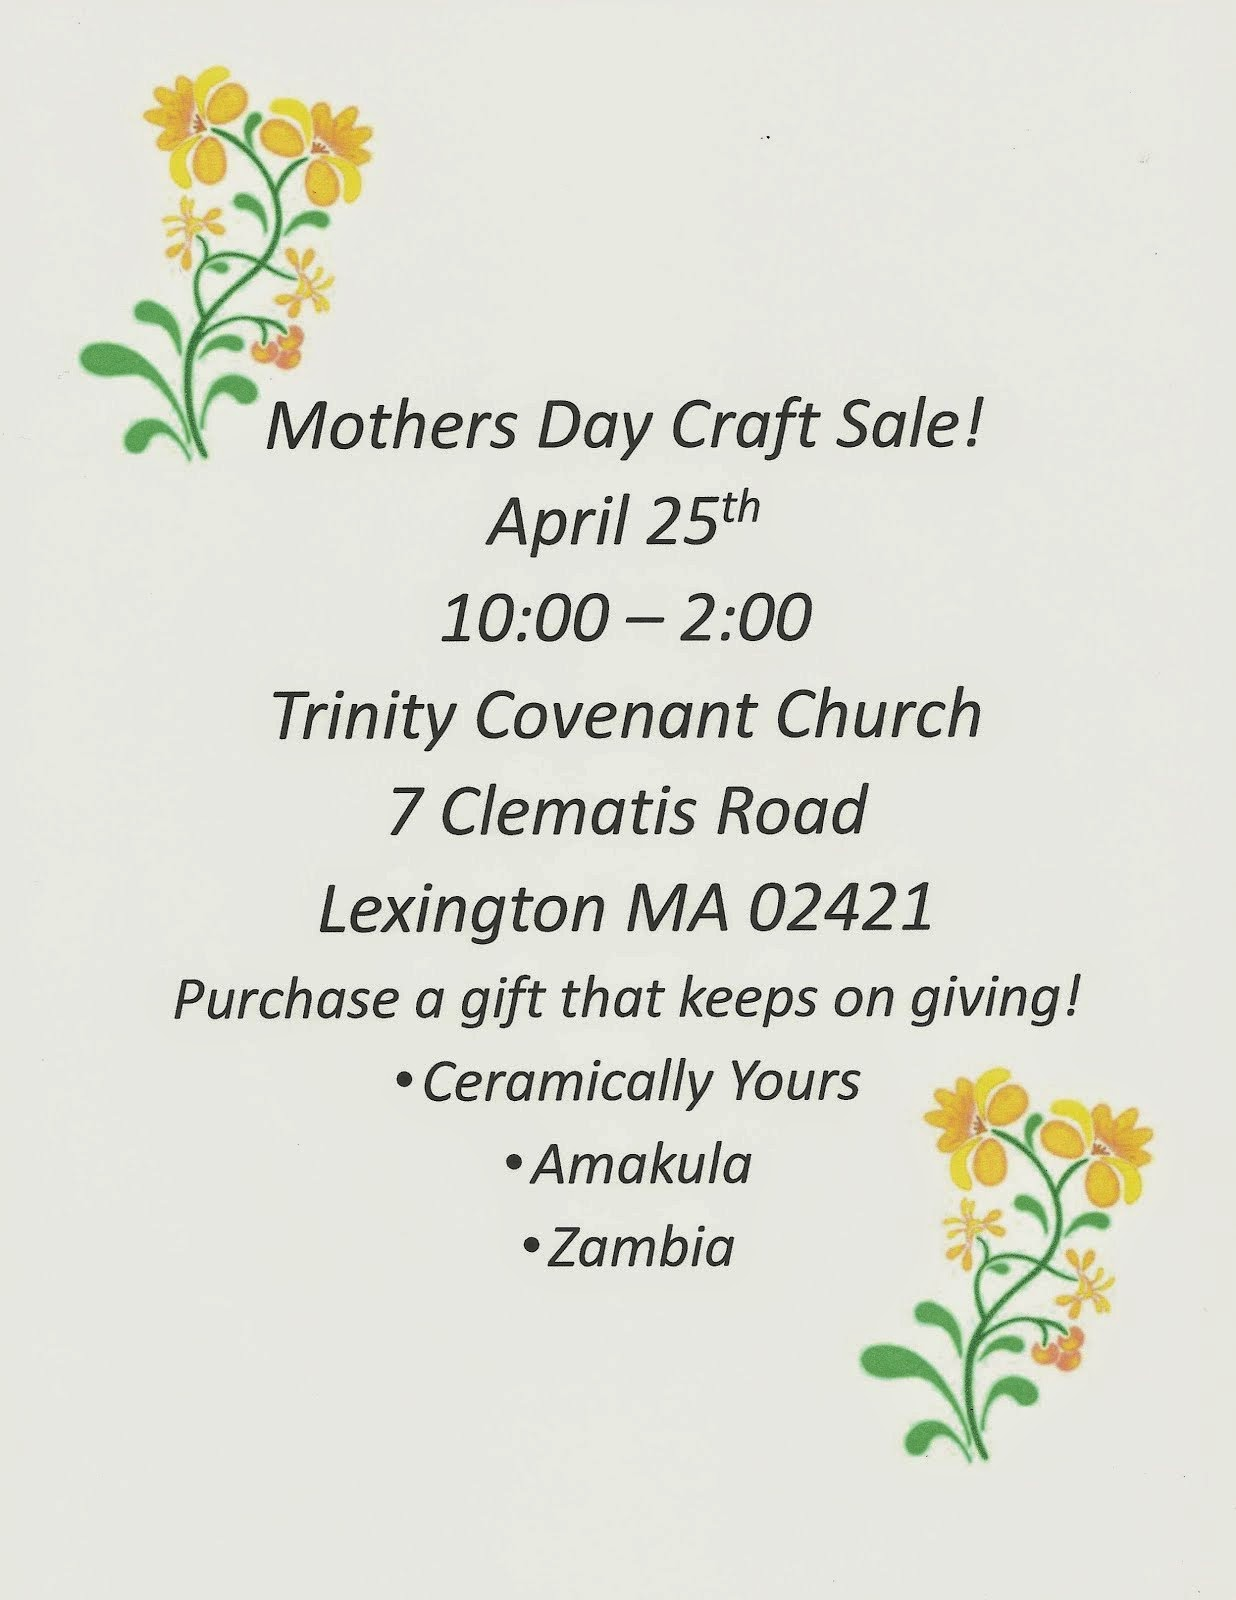 Mothers Day Craft Sale